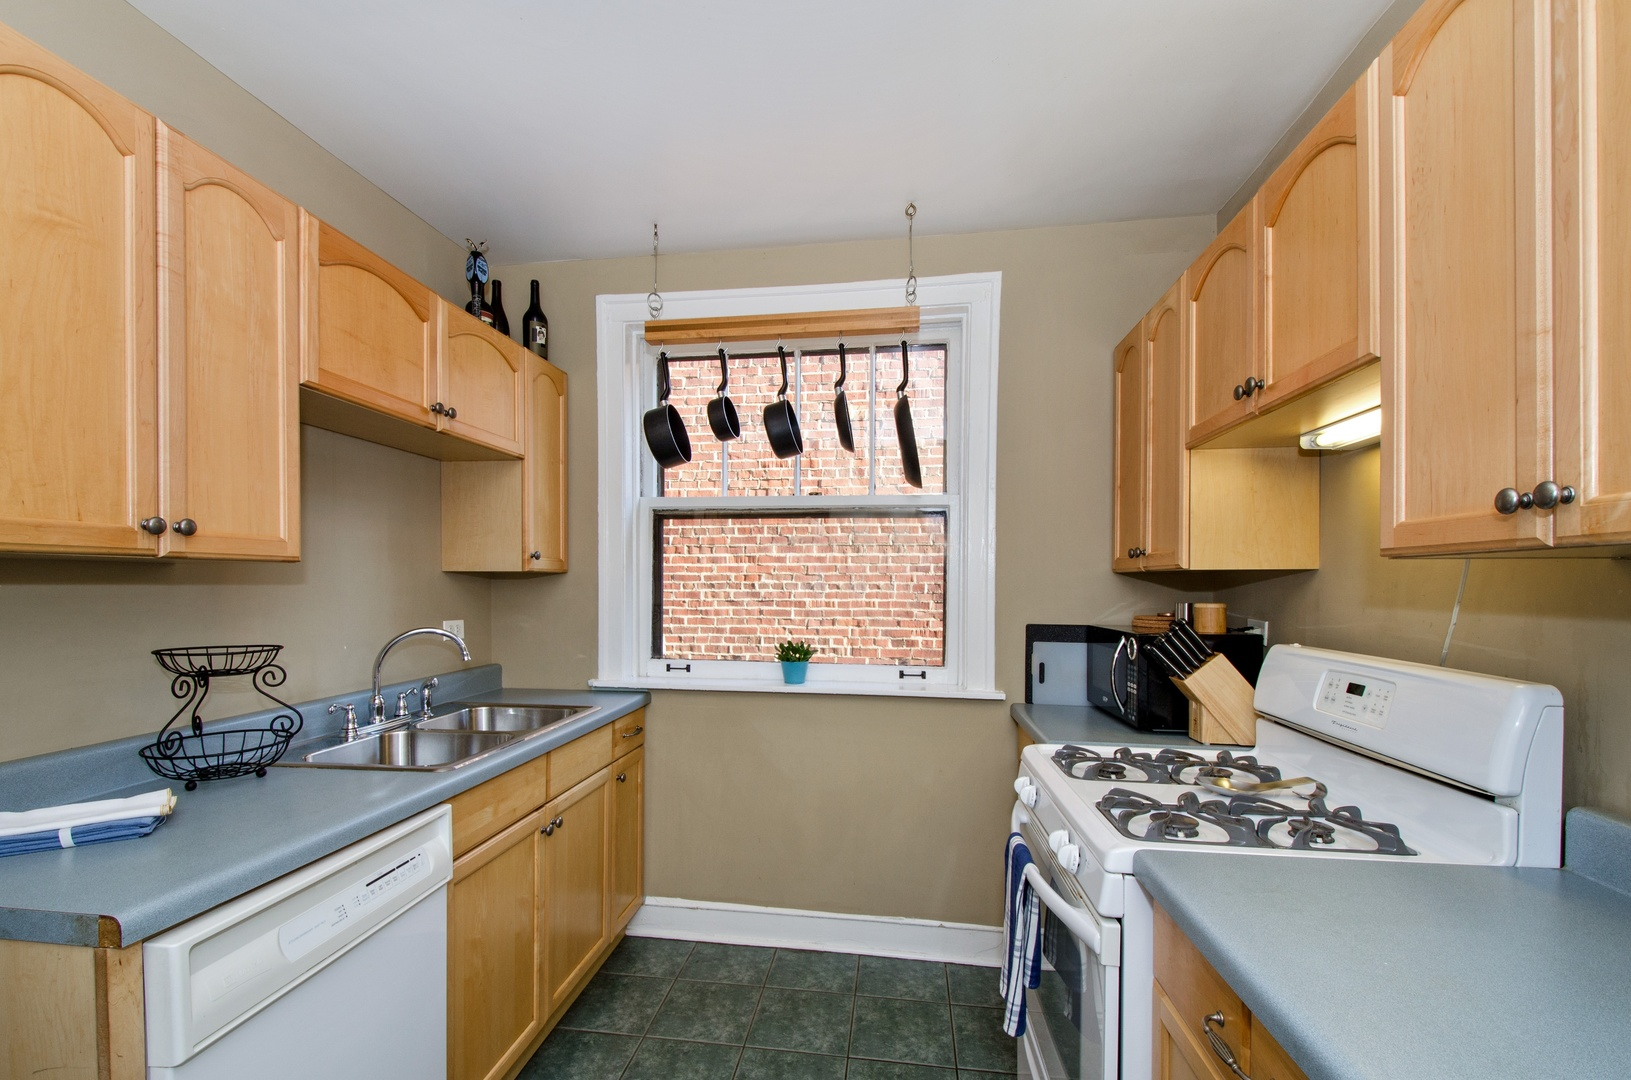 814 Michigan 2E, EVANSTON, Illinois, 60202